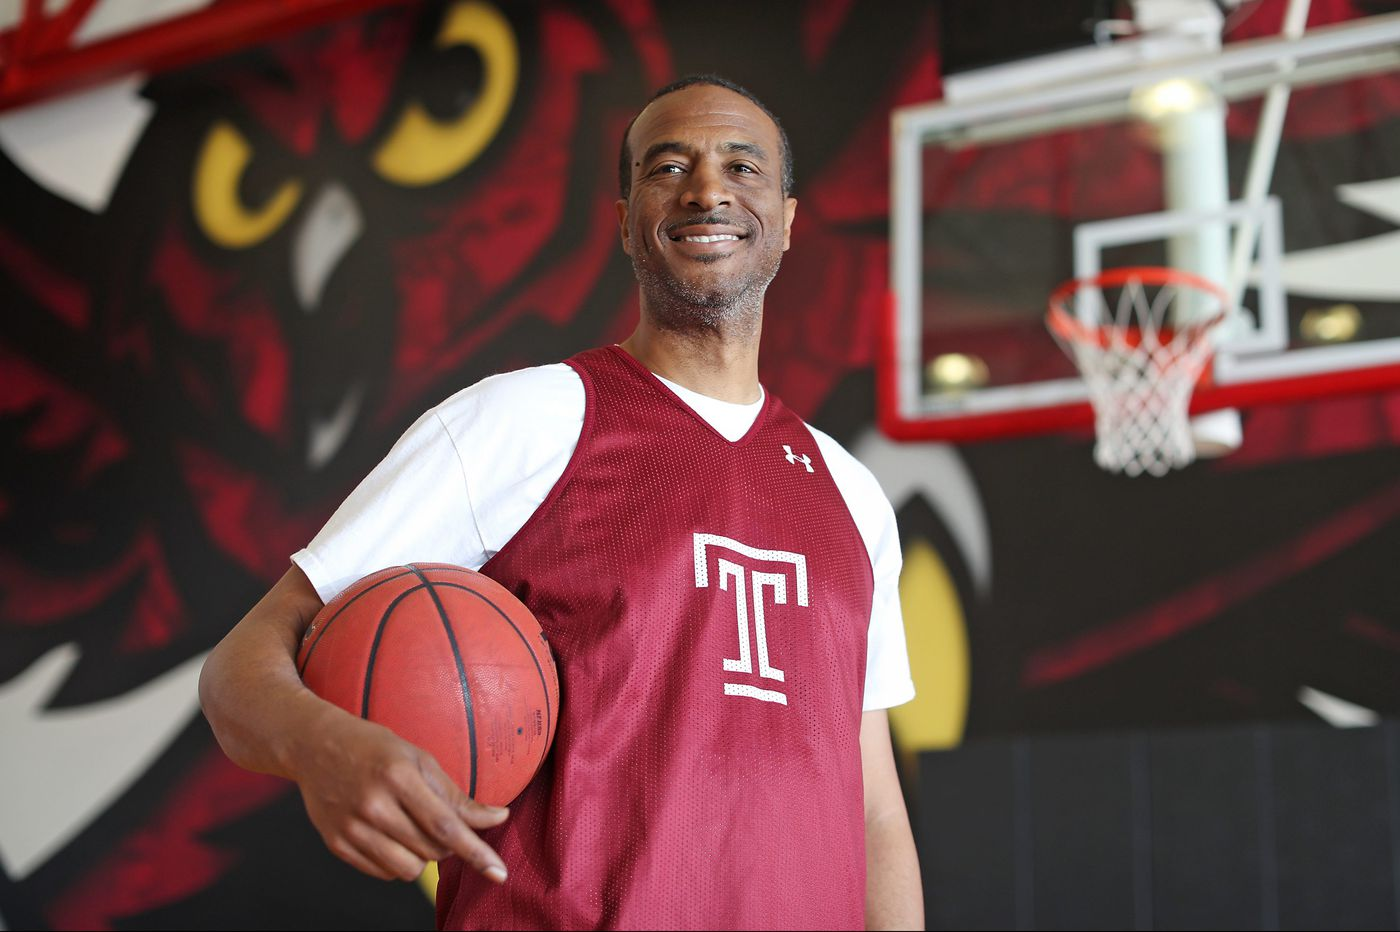 Mik Kilgore, former Temple basketball player and new Girard College coach, dies after heart attack